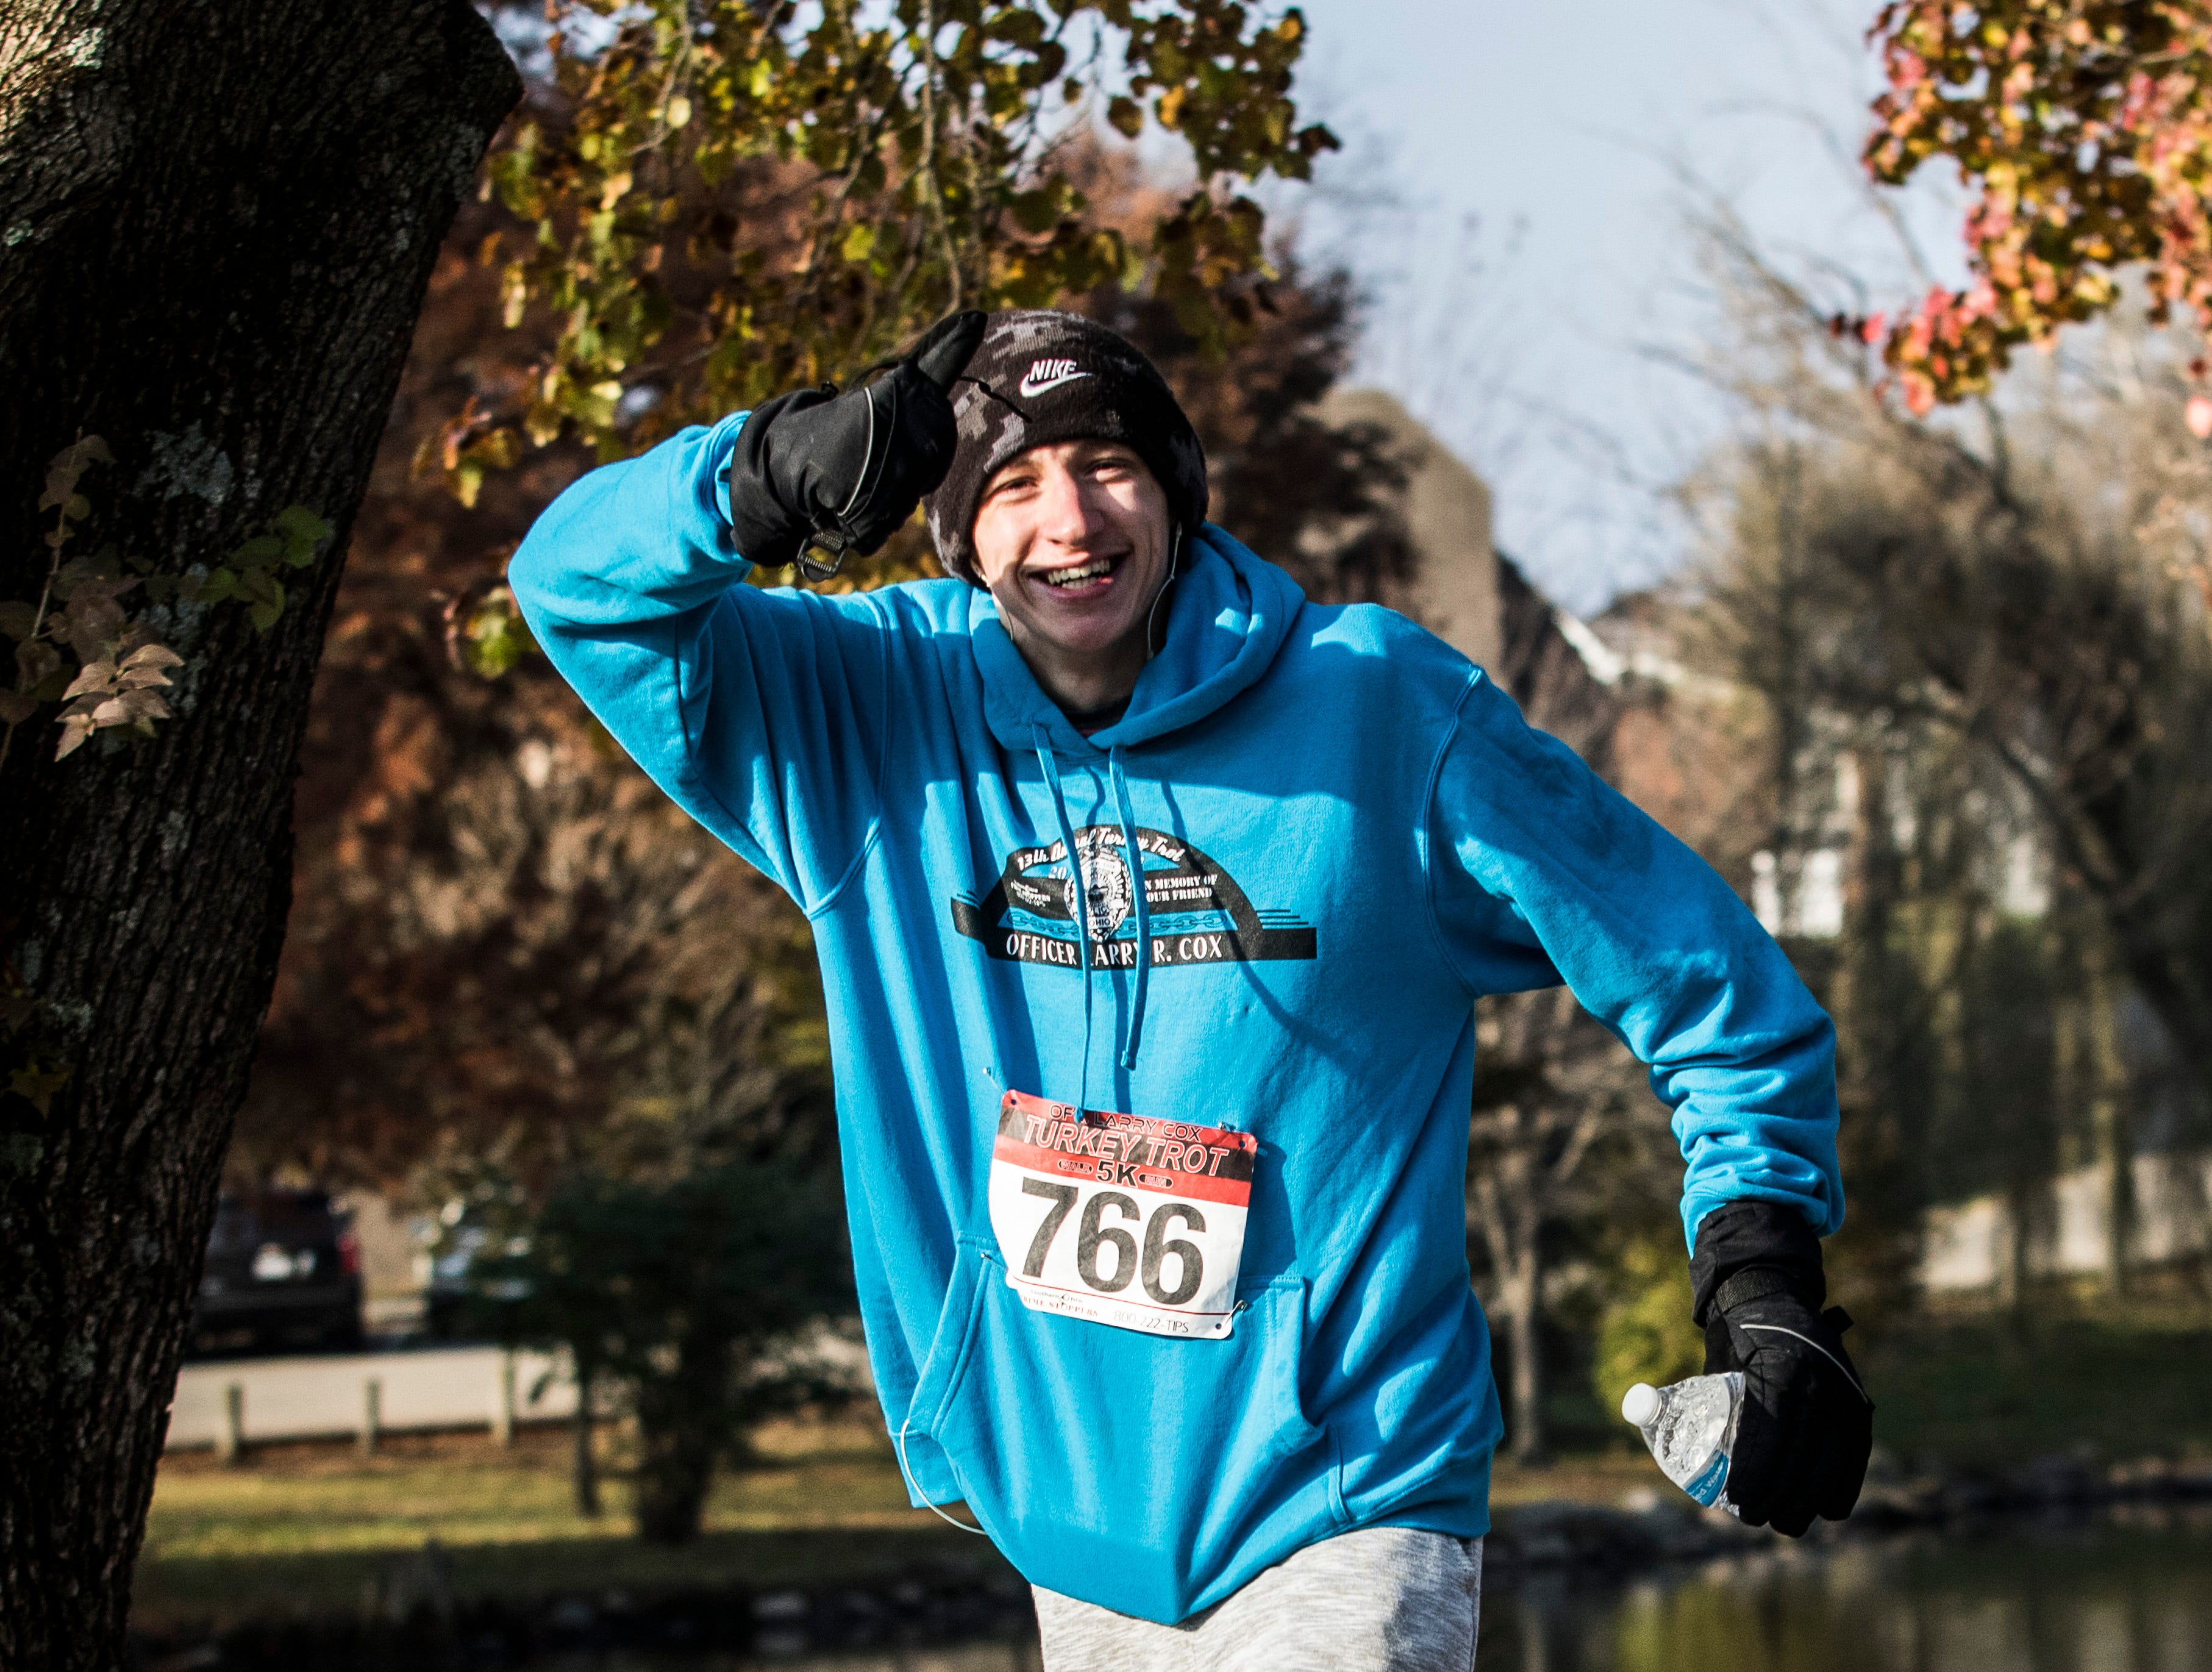 Area runners braved the cold Thursday morning to run in the 14th annual Larry Cox Turkey Trot on November 22, 2018 in Chillicothe, Ohio. Seth Farmer won the overall and men's division with a time of 15:43 and Brooke Smith won the women's division with a time of 17:58.